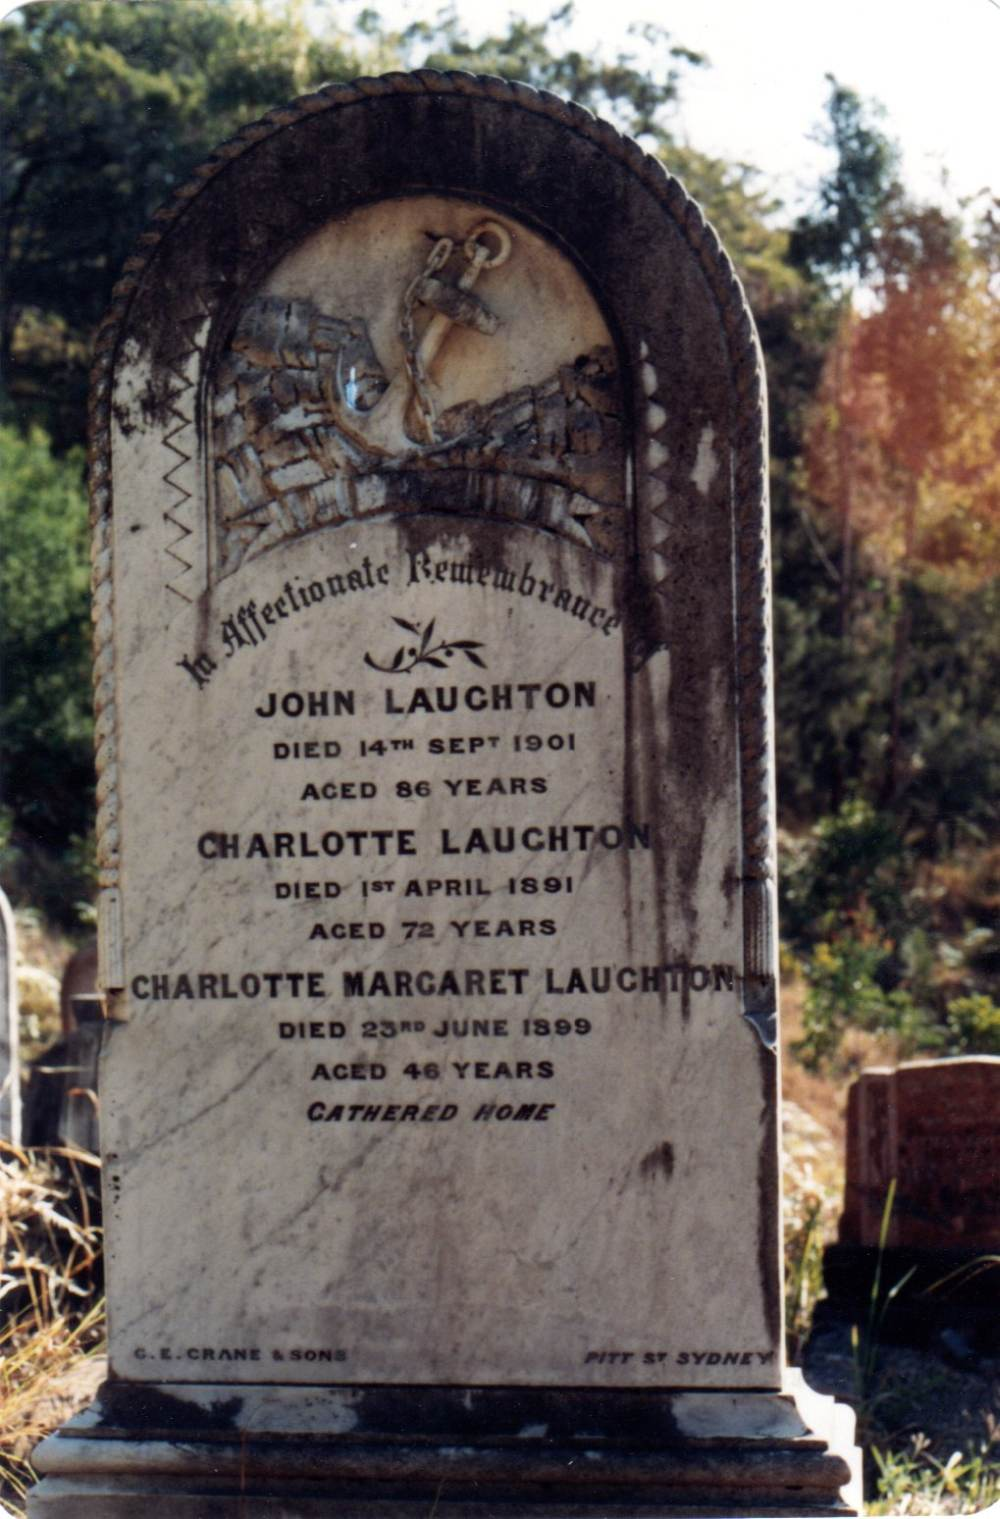 John Laughton's grave, Laughtondale Cemetery, Wiseman's Ferry, NSW